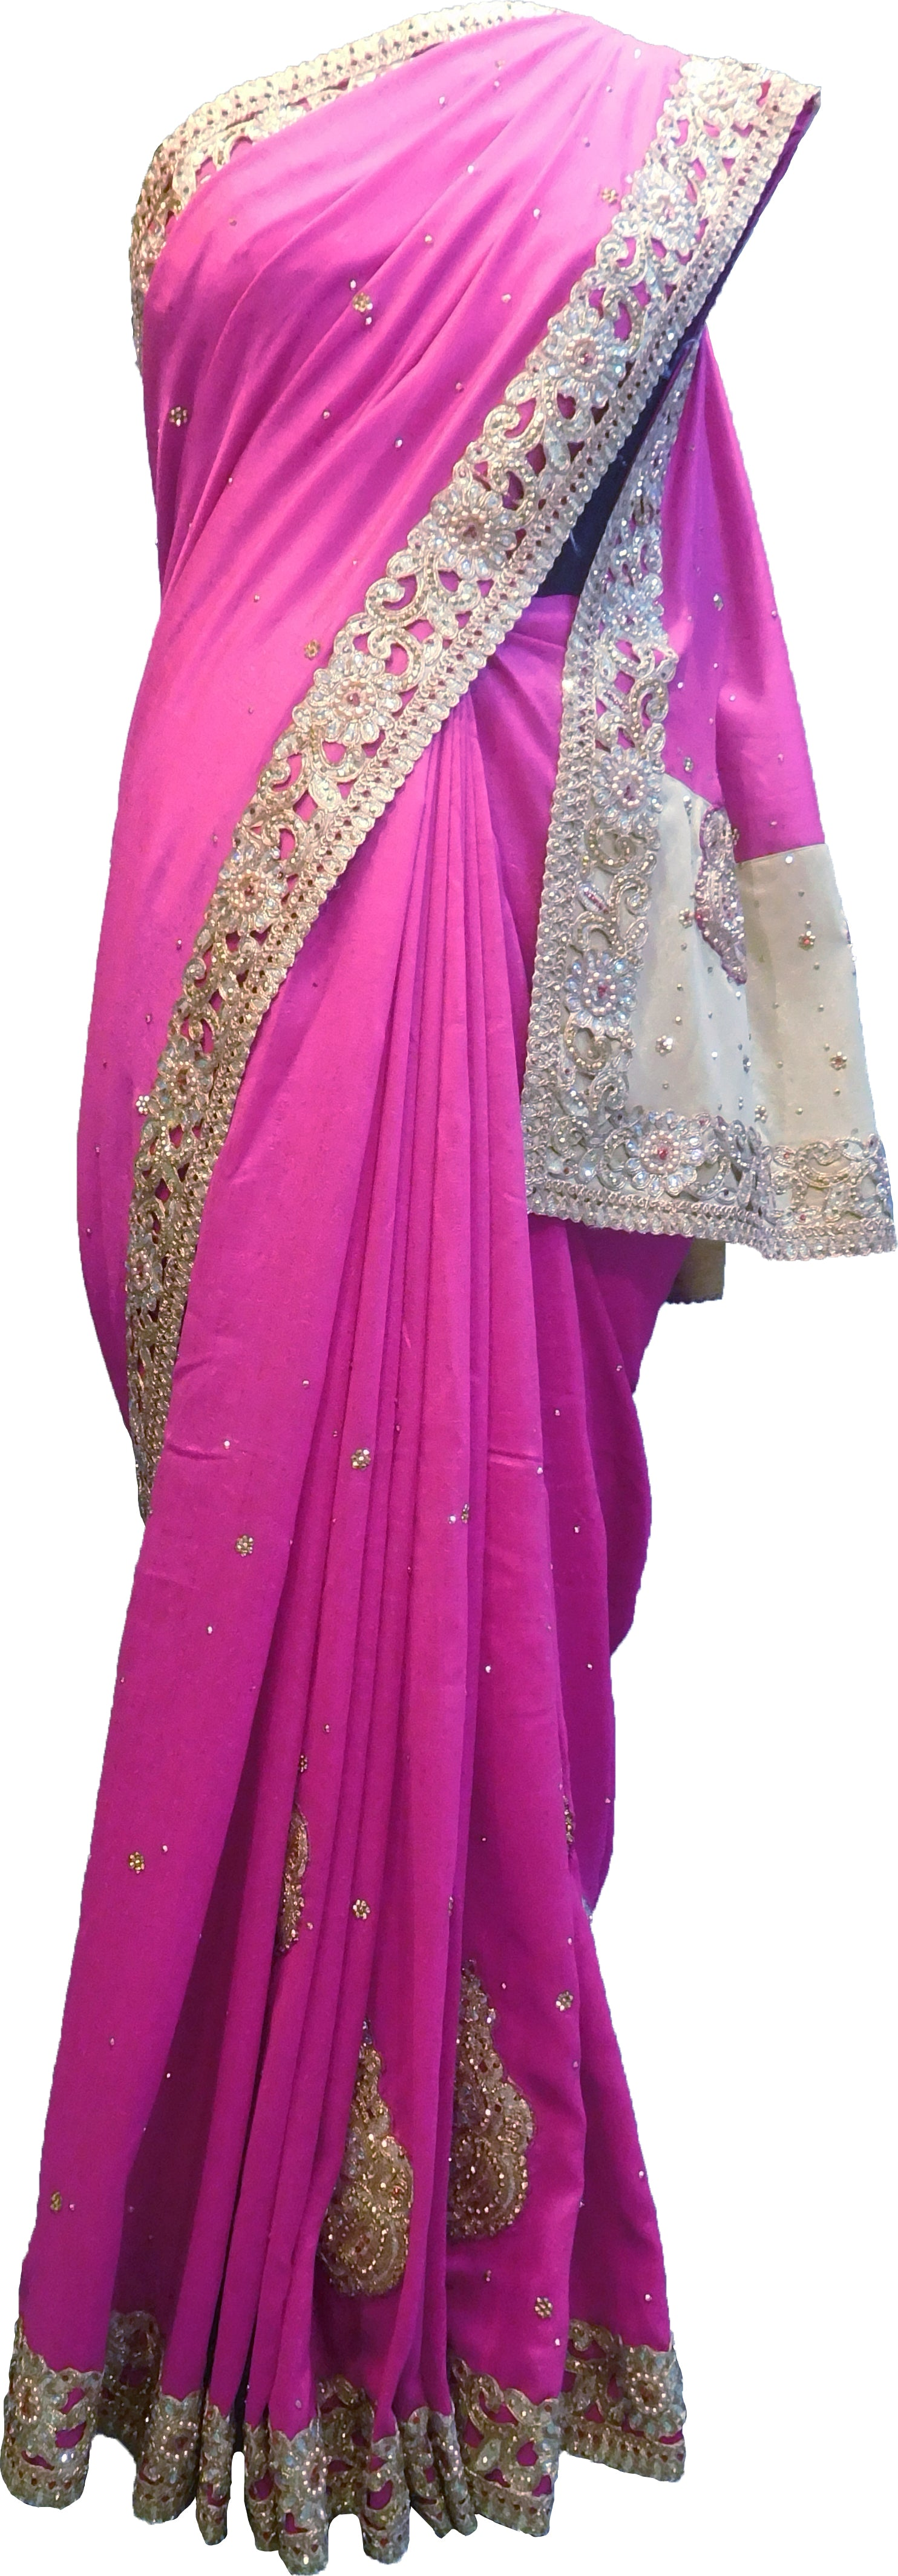 SMSAREE Pink & Golden Designer Wedding Partywear Silk (Vichitra) Stone Thread & Zari Hand Embroidery Work Bridal Saree Sari With Blouse Piece F283